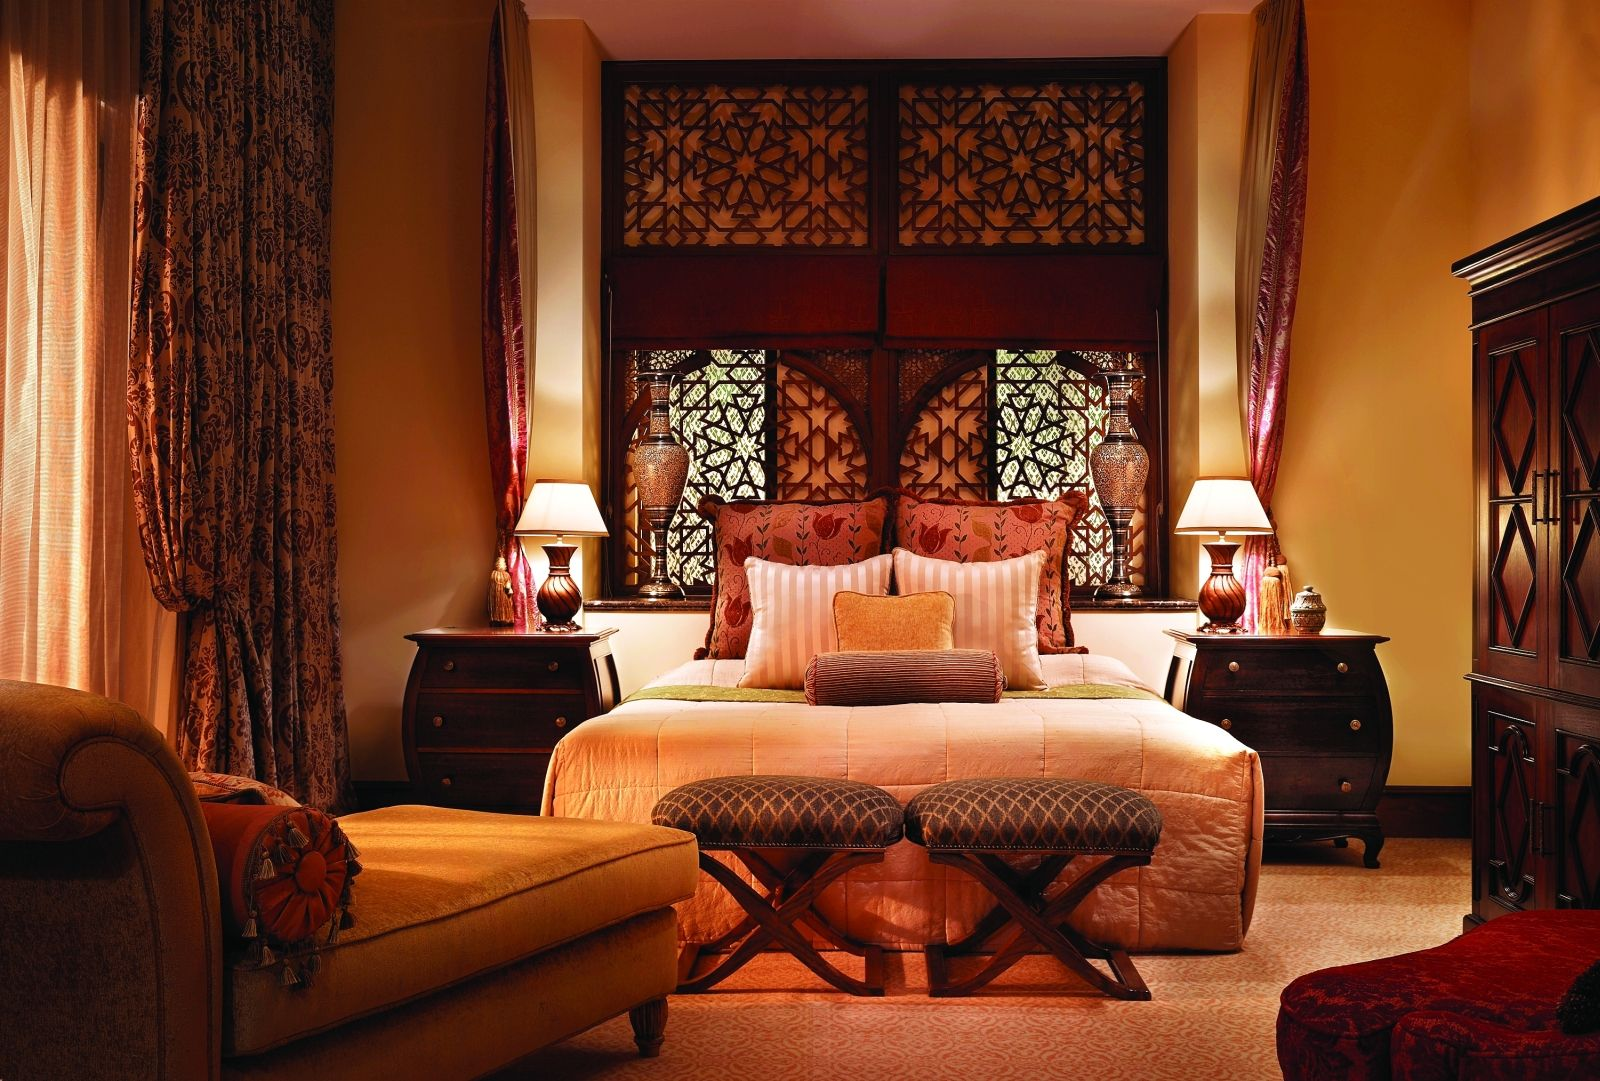 Image result for oneuonly royal mirage arabic interiors